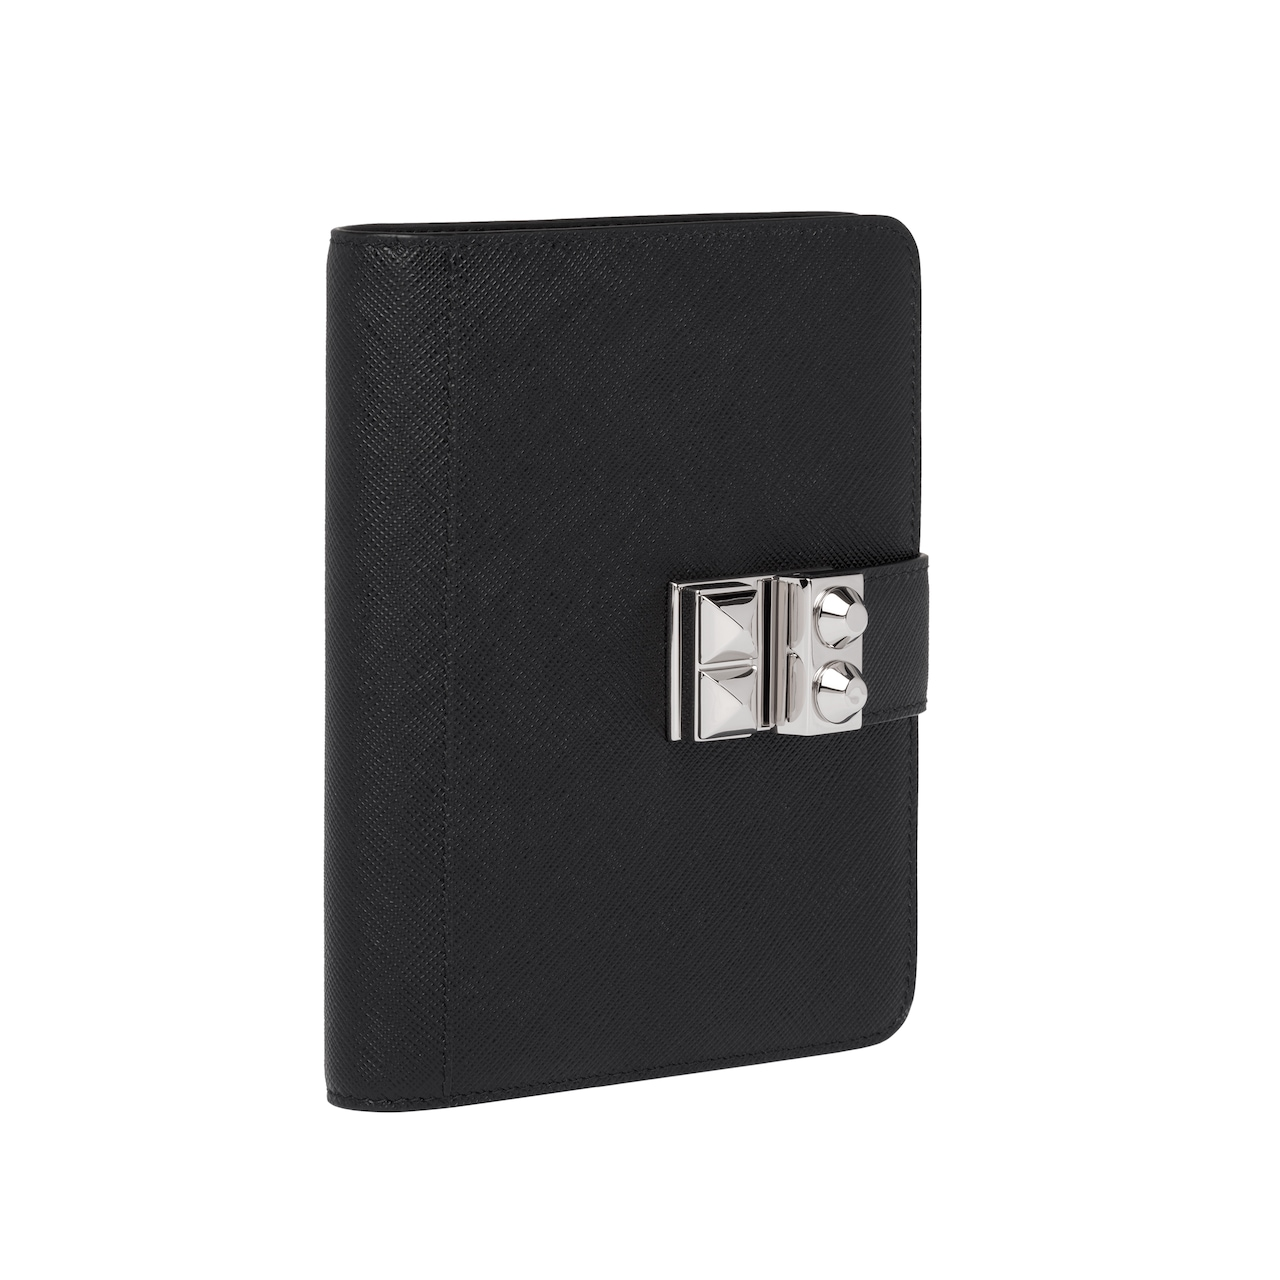 Prada Elektra Saffiano leather pocket diary 3